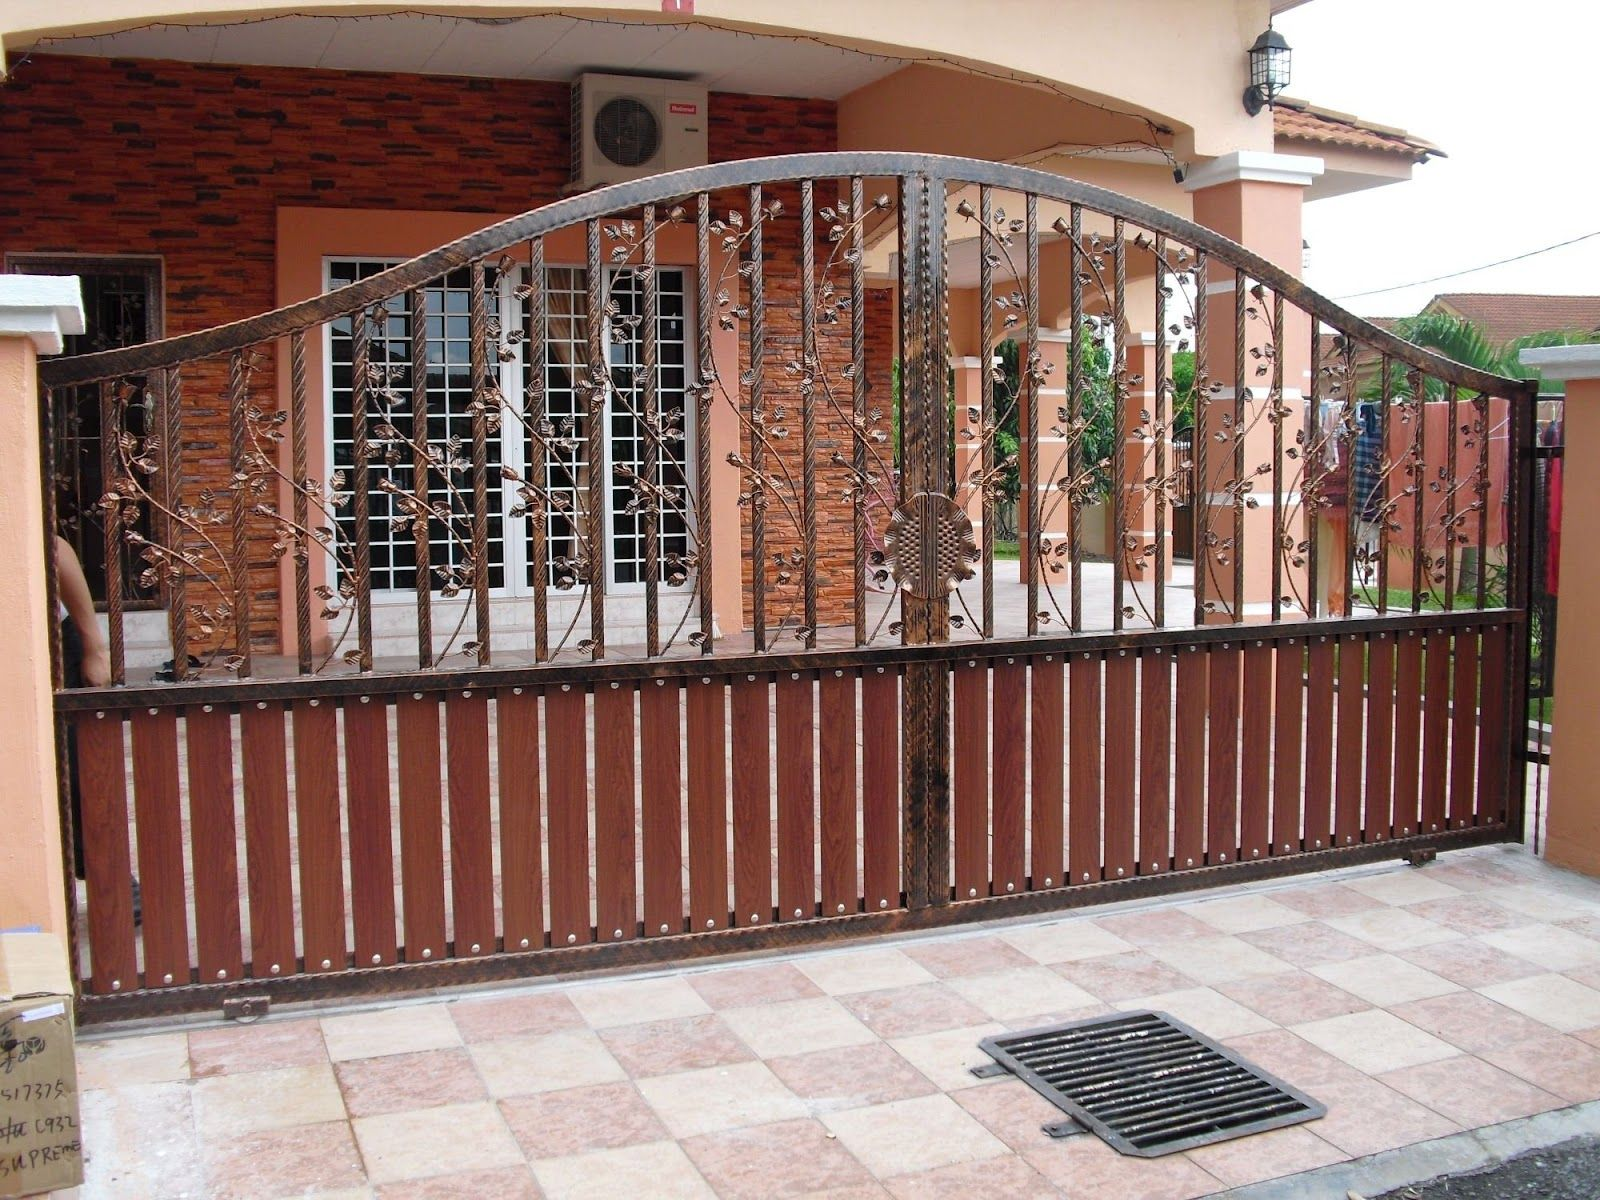 Western metal gate entrances house gate designs Metal gate designs images